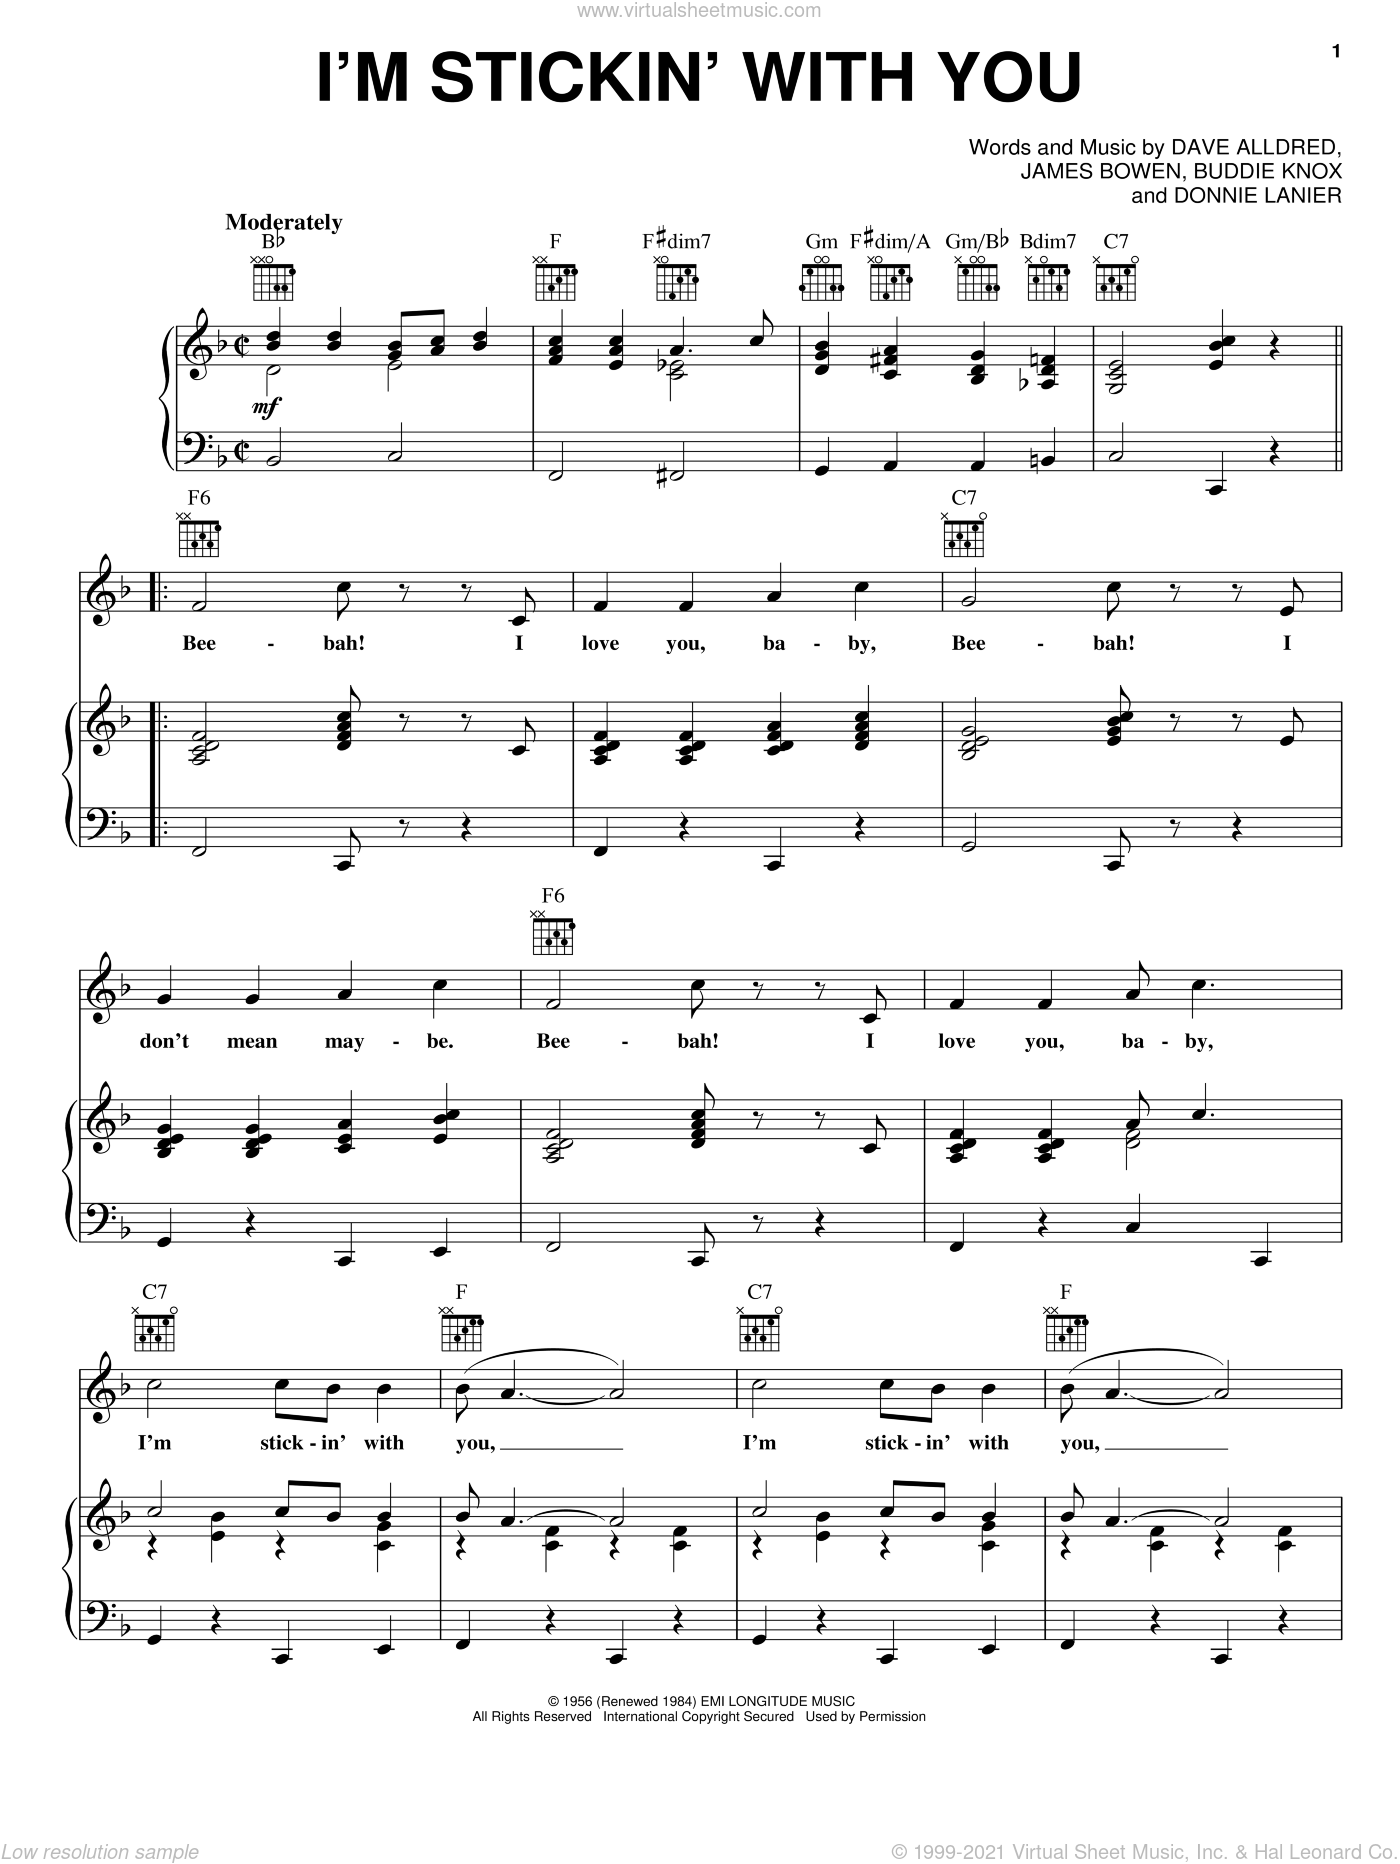 I'm Stickin' With You sheet music for voice, piano or guitar by Donnie Lanier